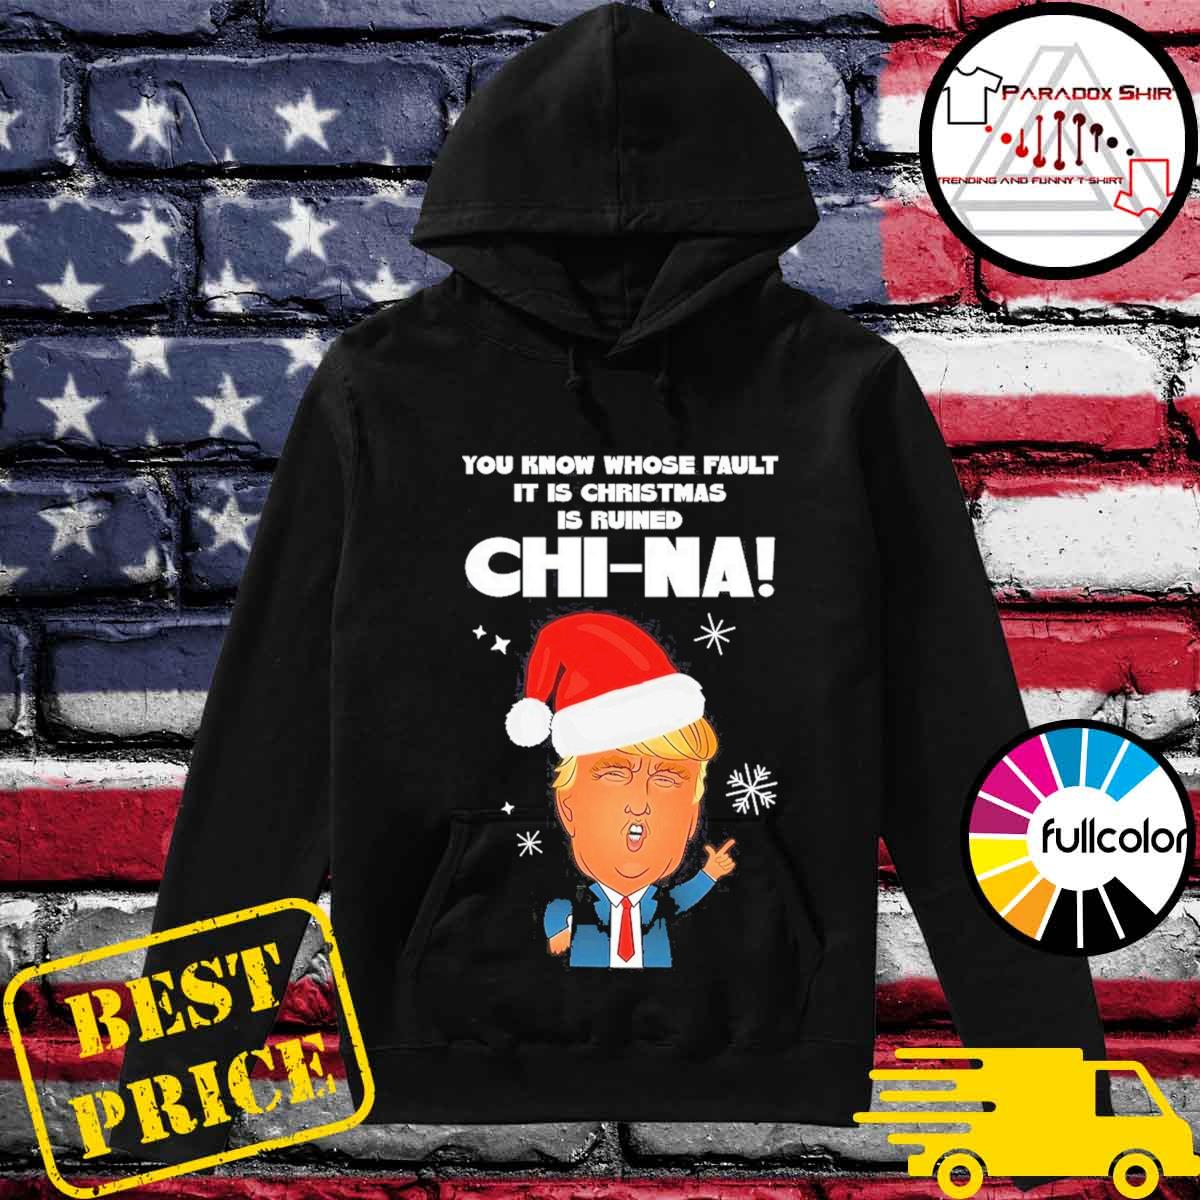 Santa Donald Trump You know whose fault it is Christmas is ruined Chi-Na Christmas s Hoodie